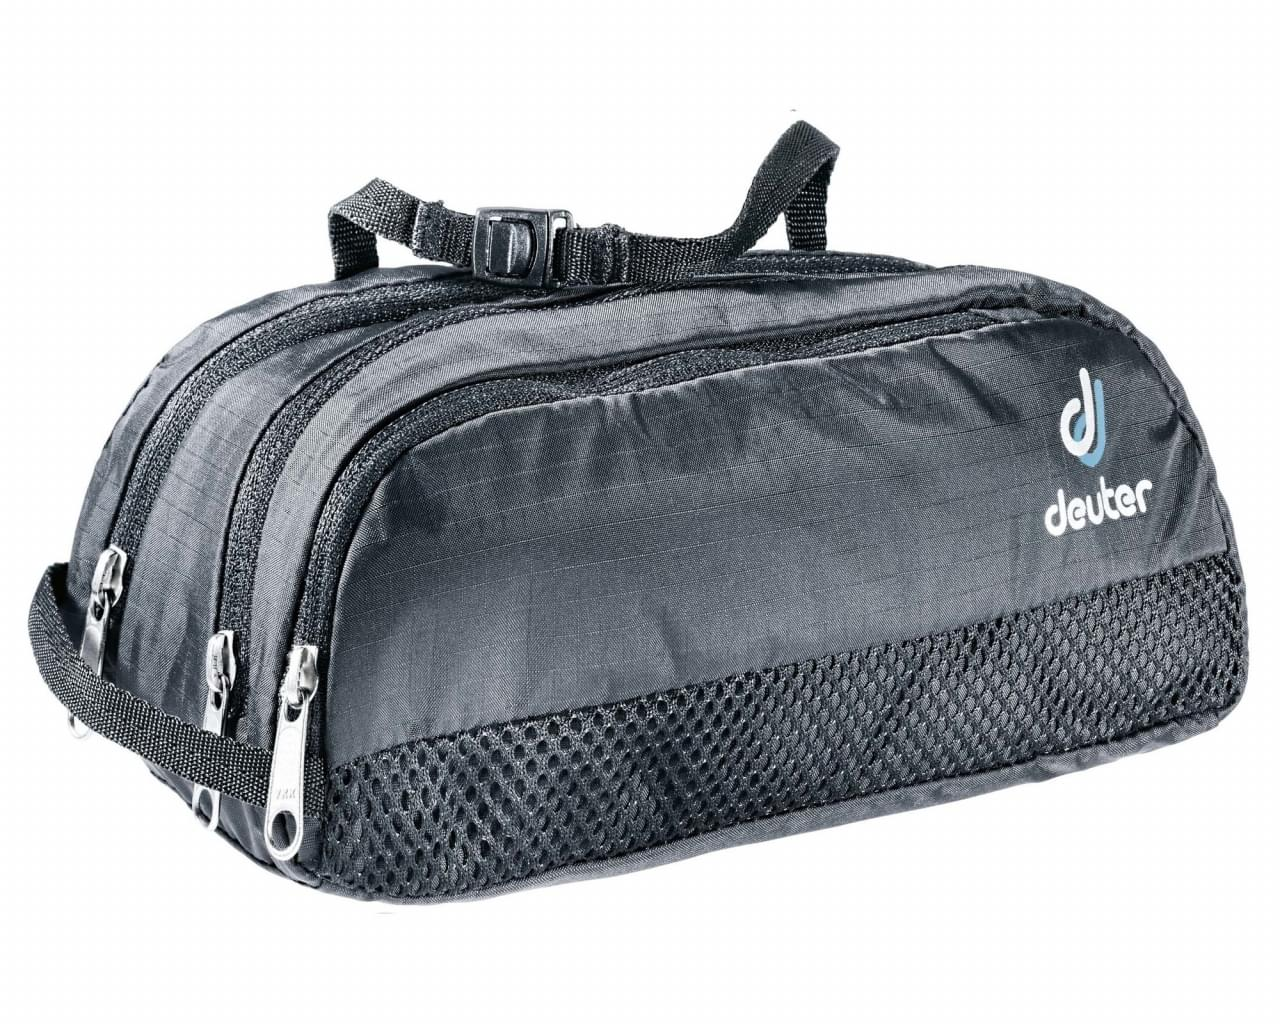 Deuter Wash Bag Tour II Toilettas Zwart